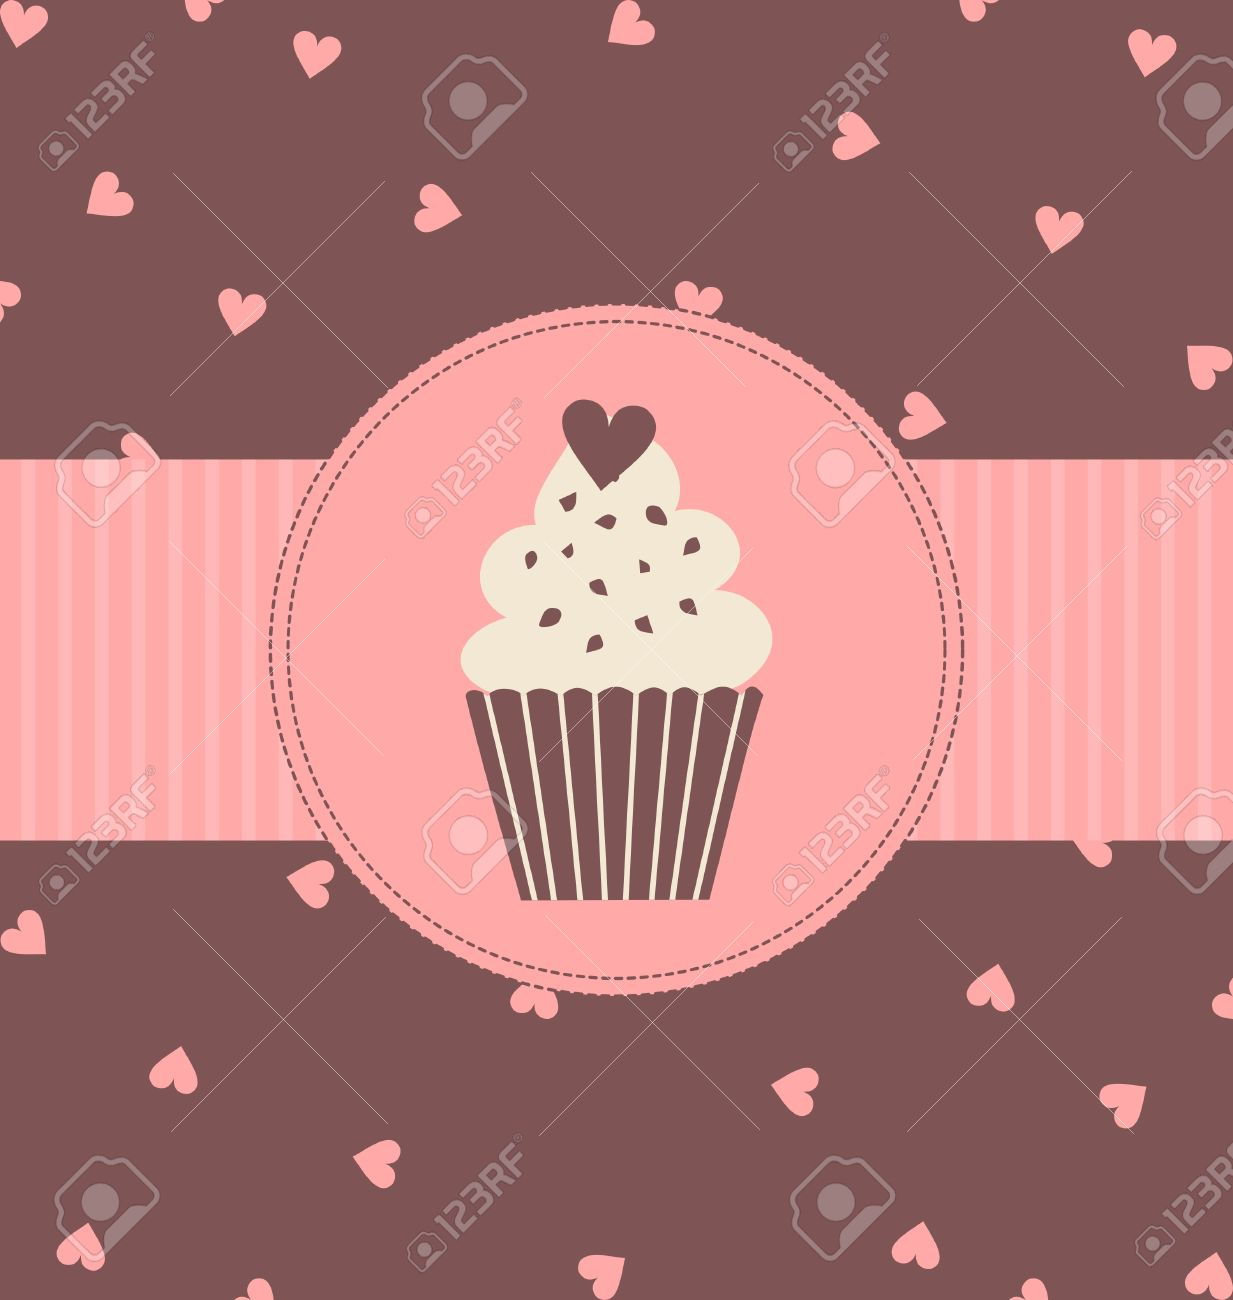 Illustration Of A Cute Cupcake In Pastel Pink And Brown Colors.